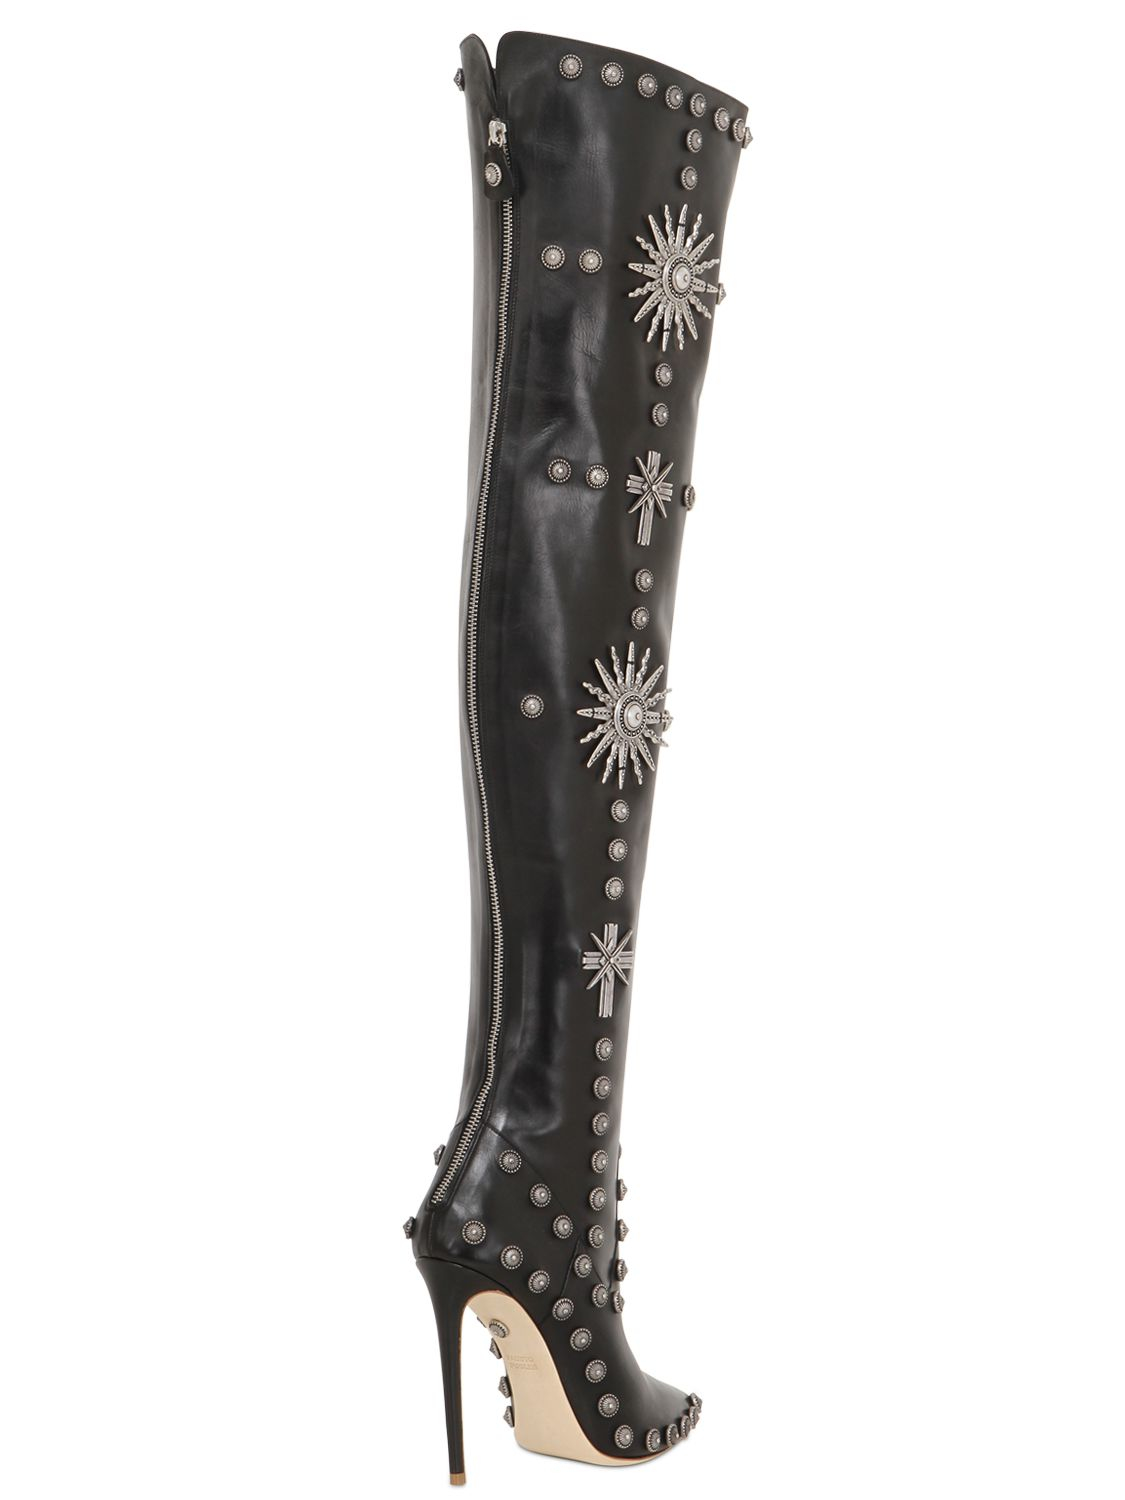 Fausto puglisi Studded Over The Knee Boots in Black | Lyst